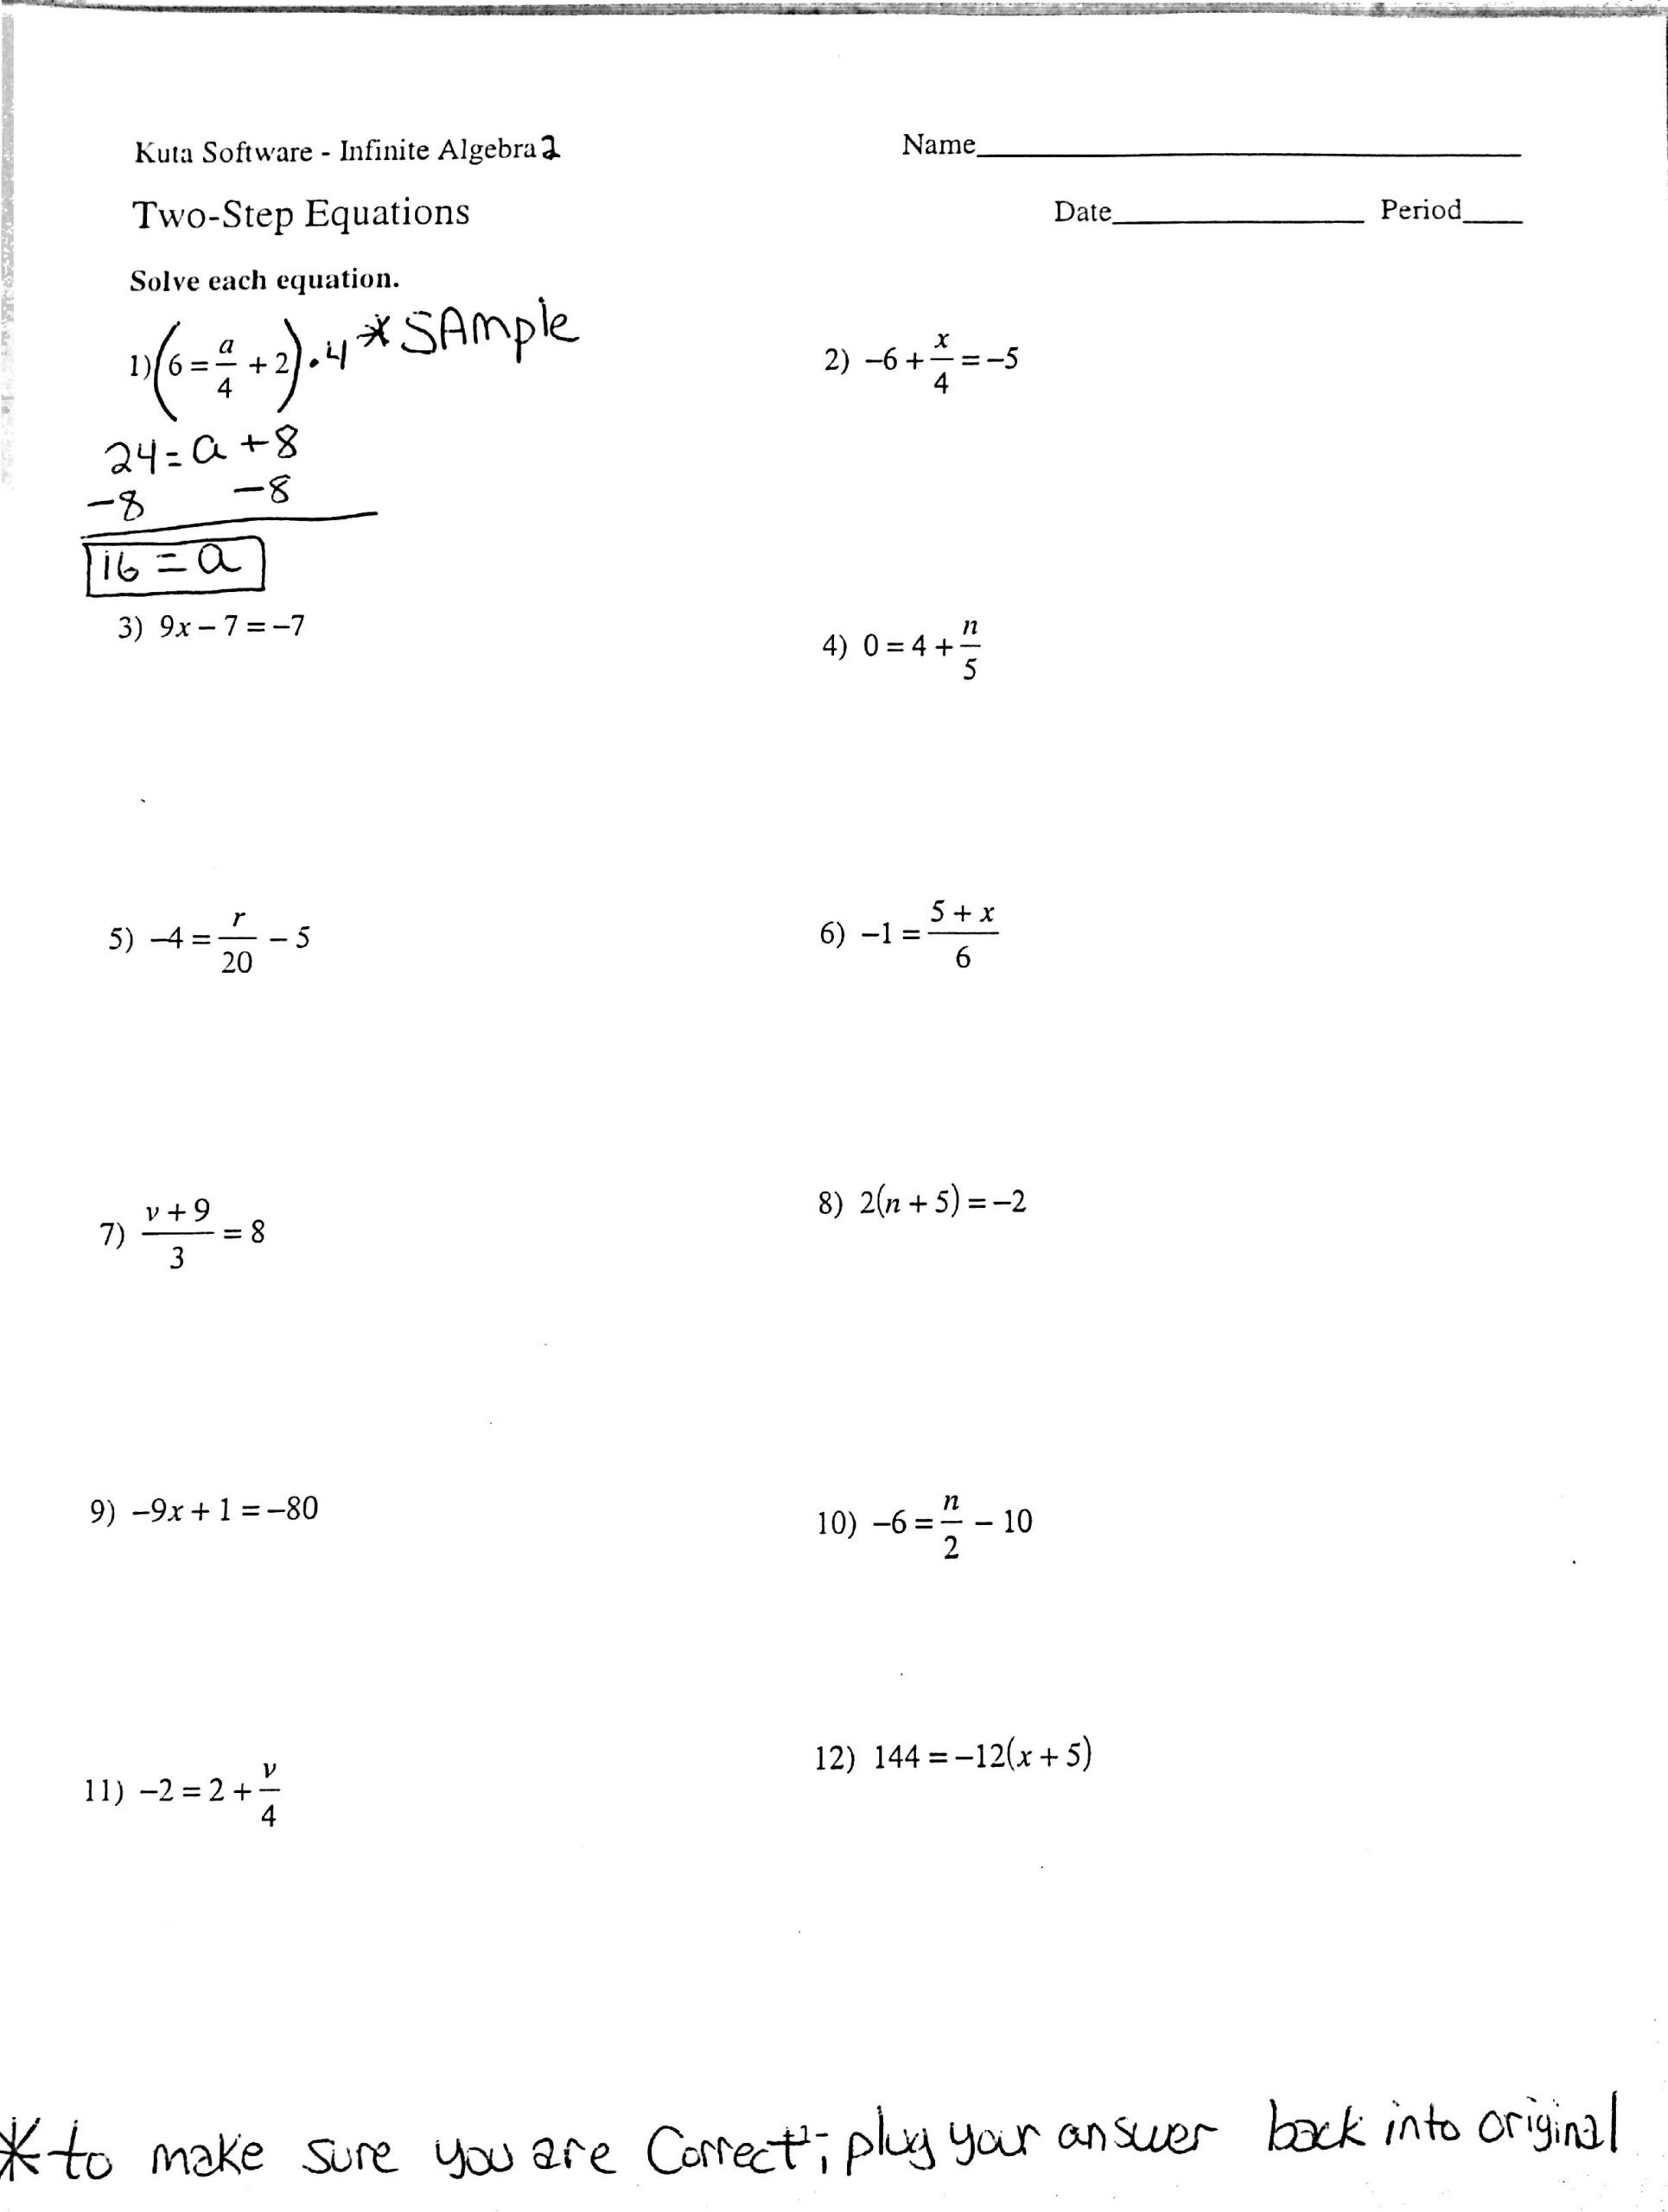 Free Printable Two-Step Equation Worksheets (Page 1) - Line